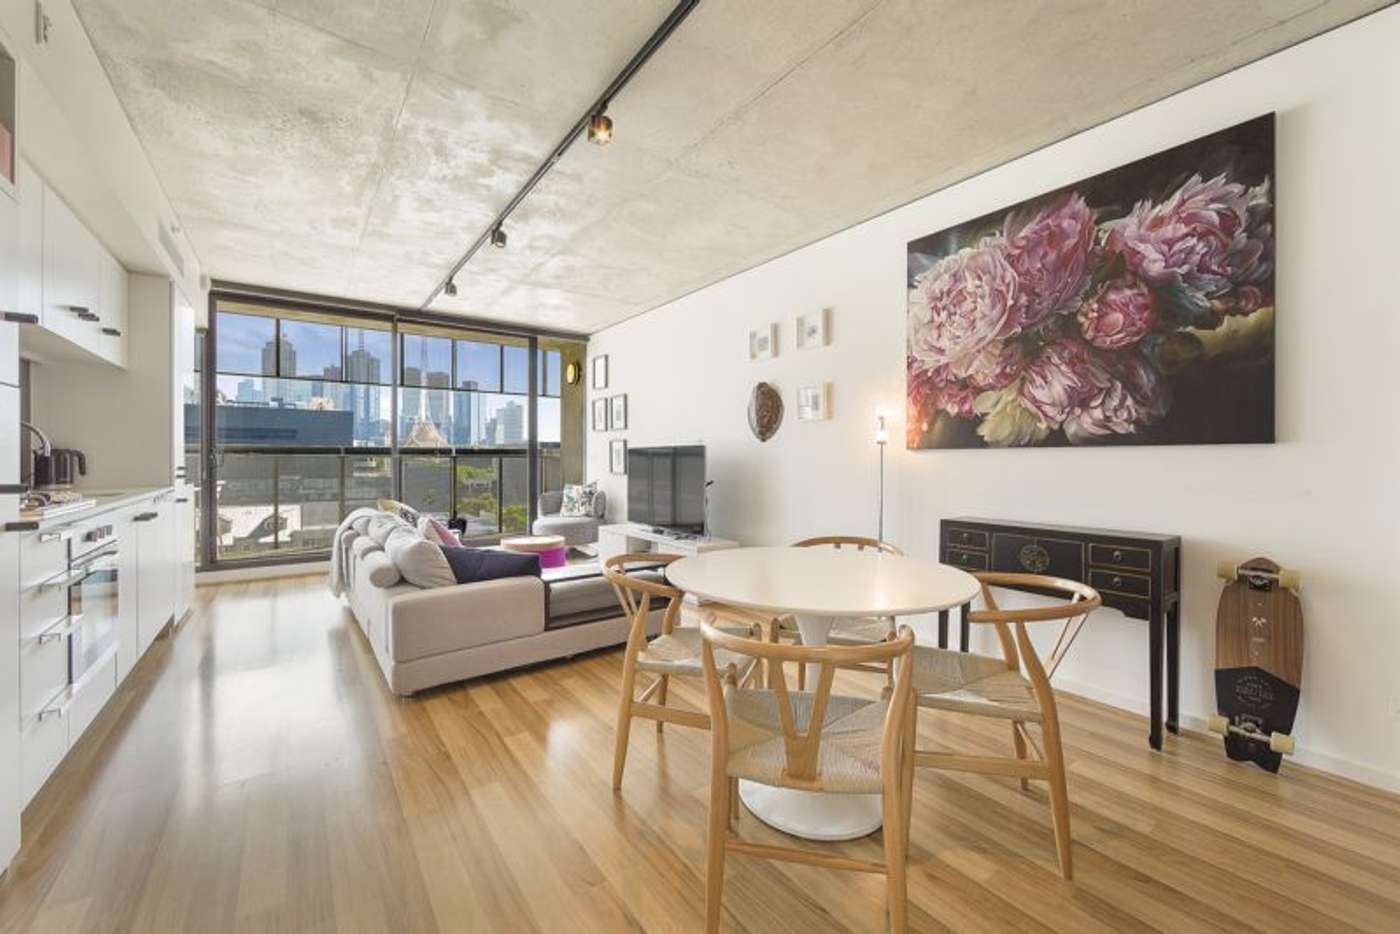 Main view of Homely apartment listing, 717/152 Sturt Street, Southbank VIC 3006